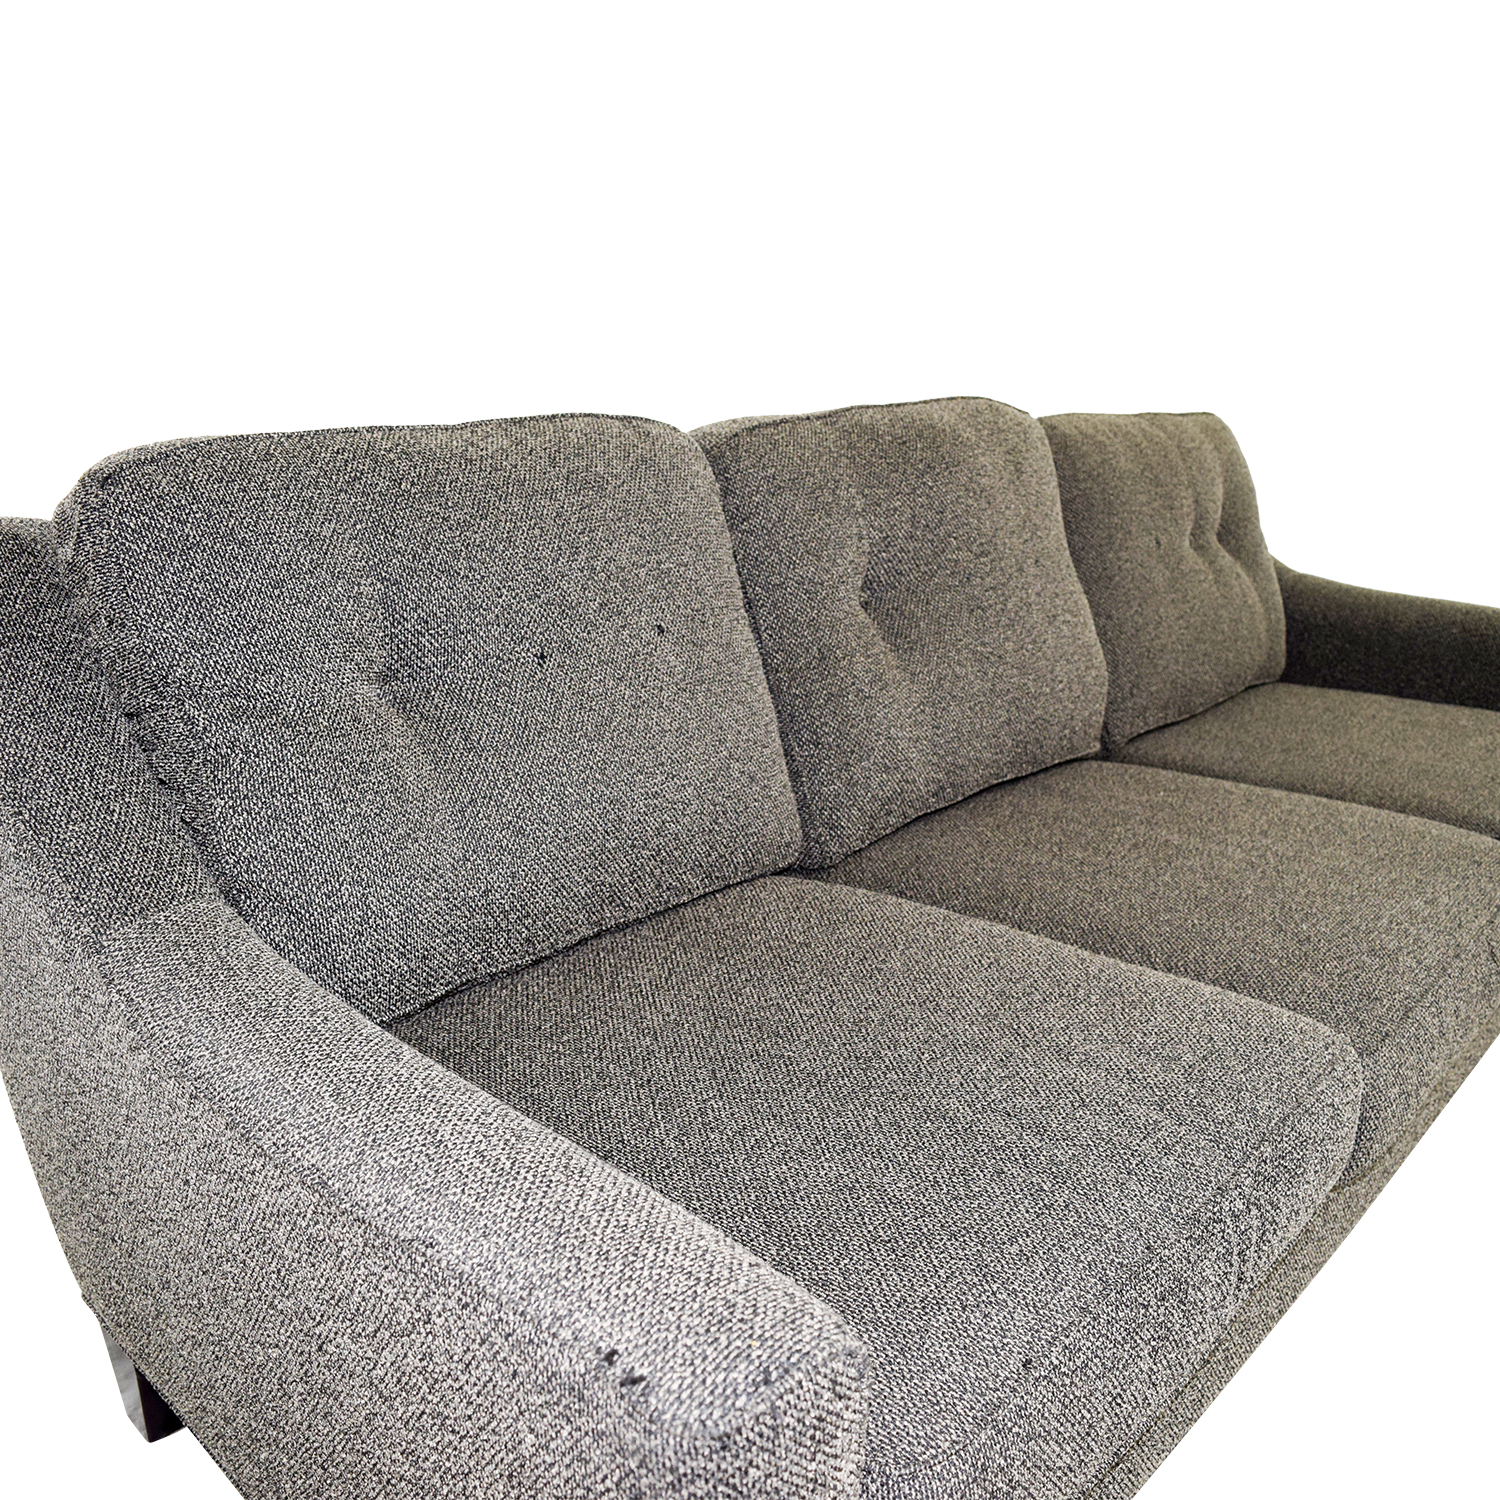 85% Off – Cindy Crawford Home Cindy Crawford Home Grey Throughout Cindy Crawford Sofas (View 7 of 15)